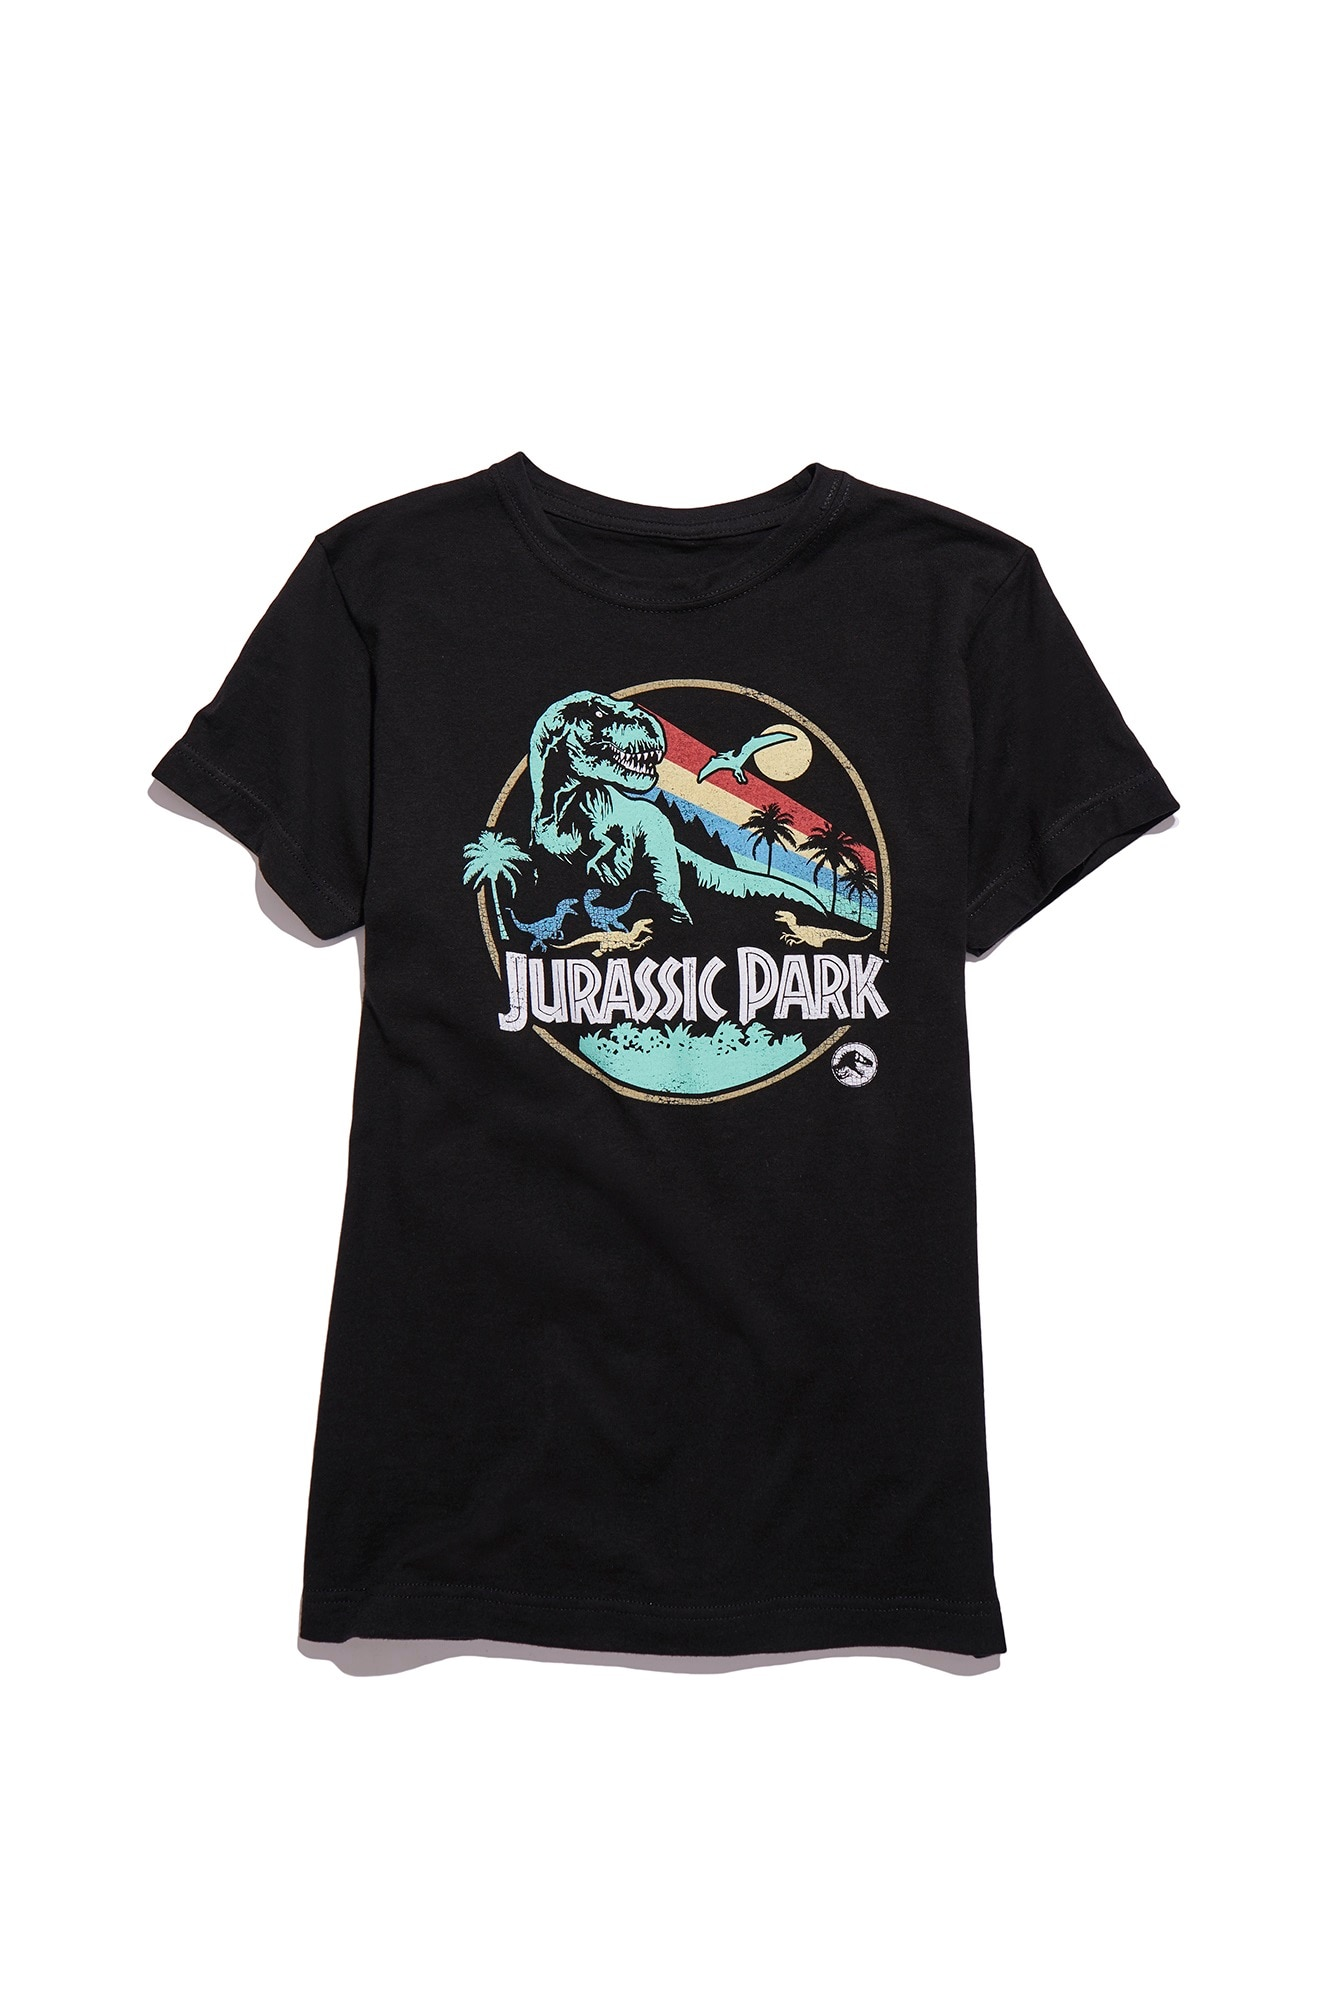 Jurassic Park Classic Tee Womens - Exclusive: BoxLunch's JURASSIC WORLD Collection for Humans and Pets